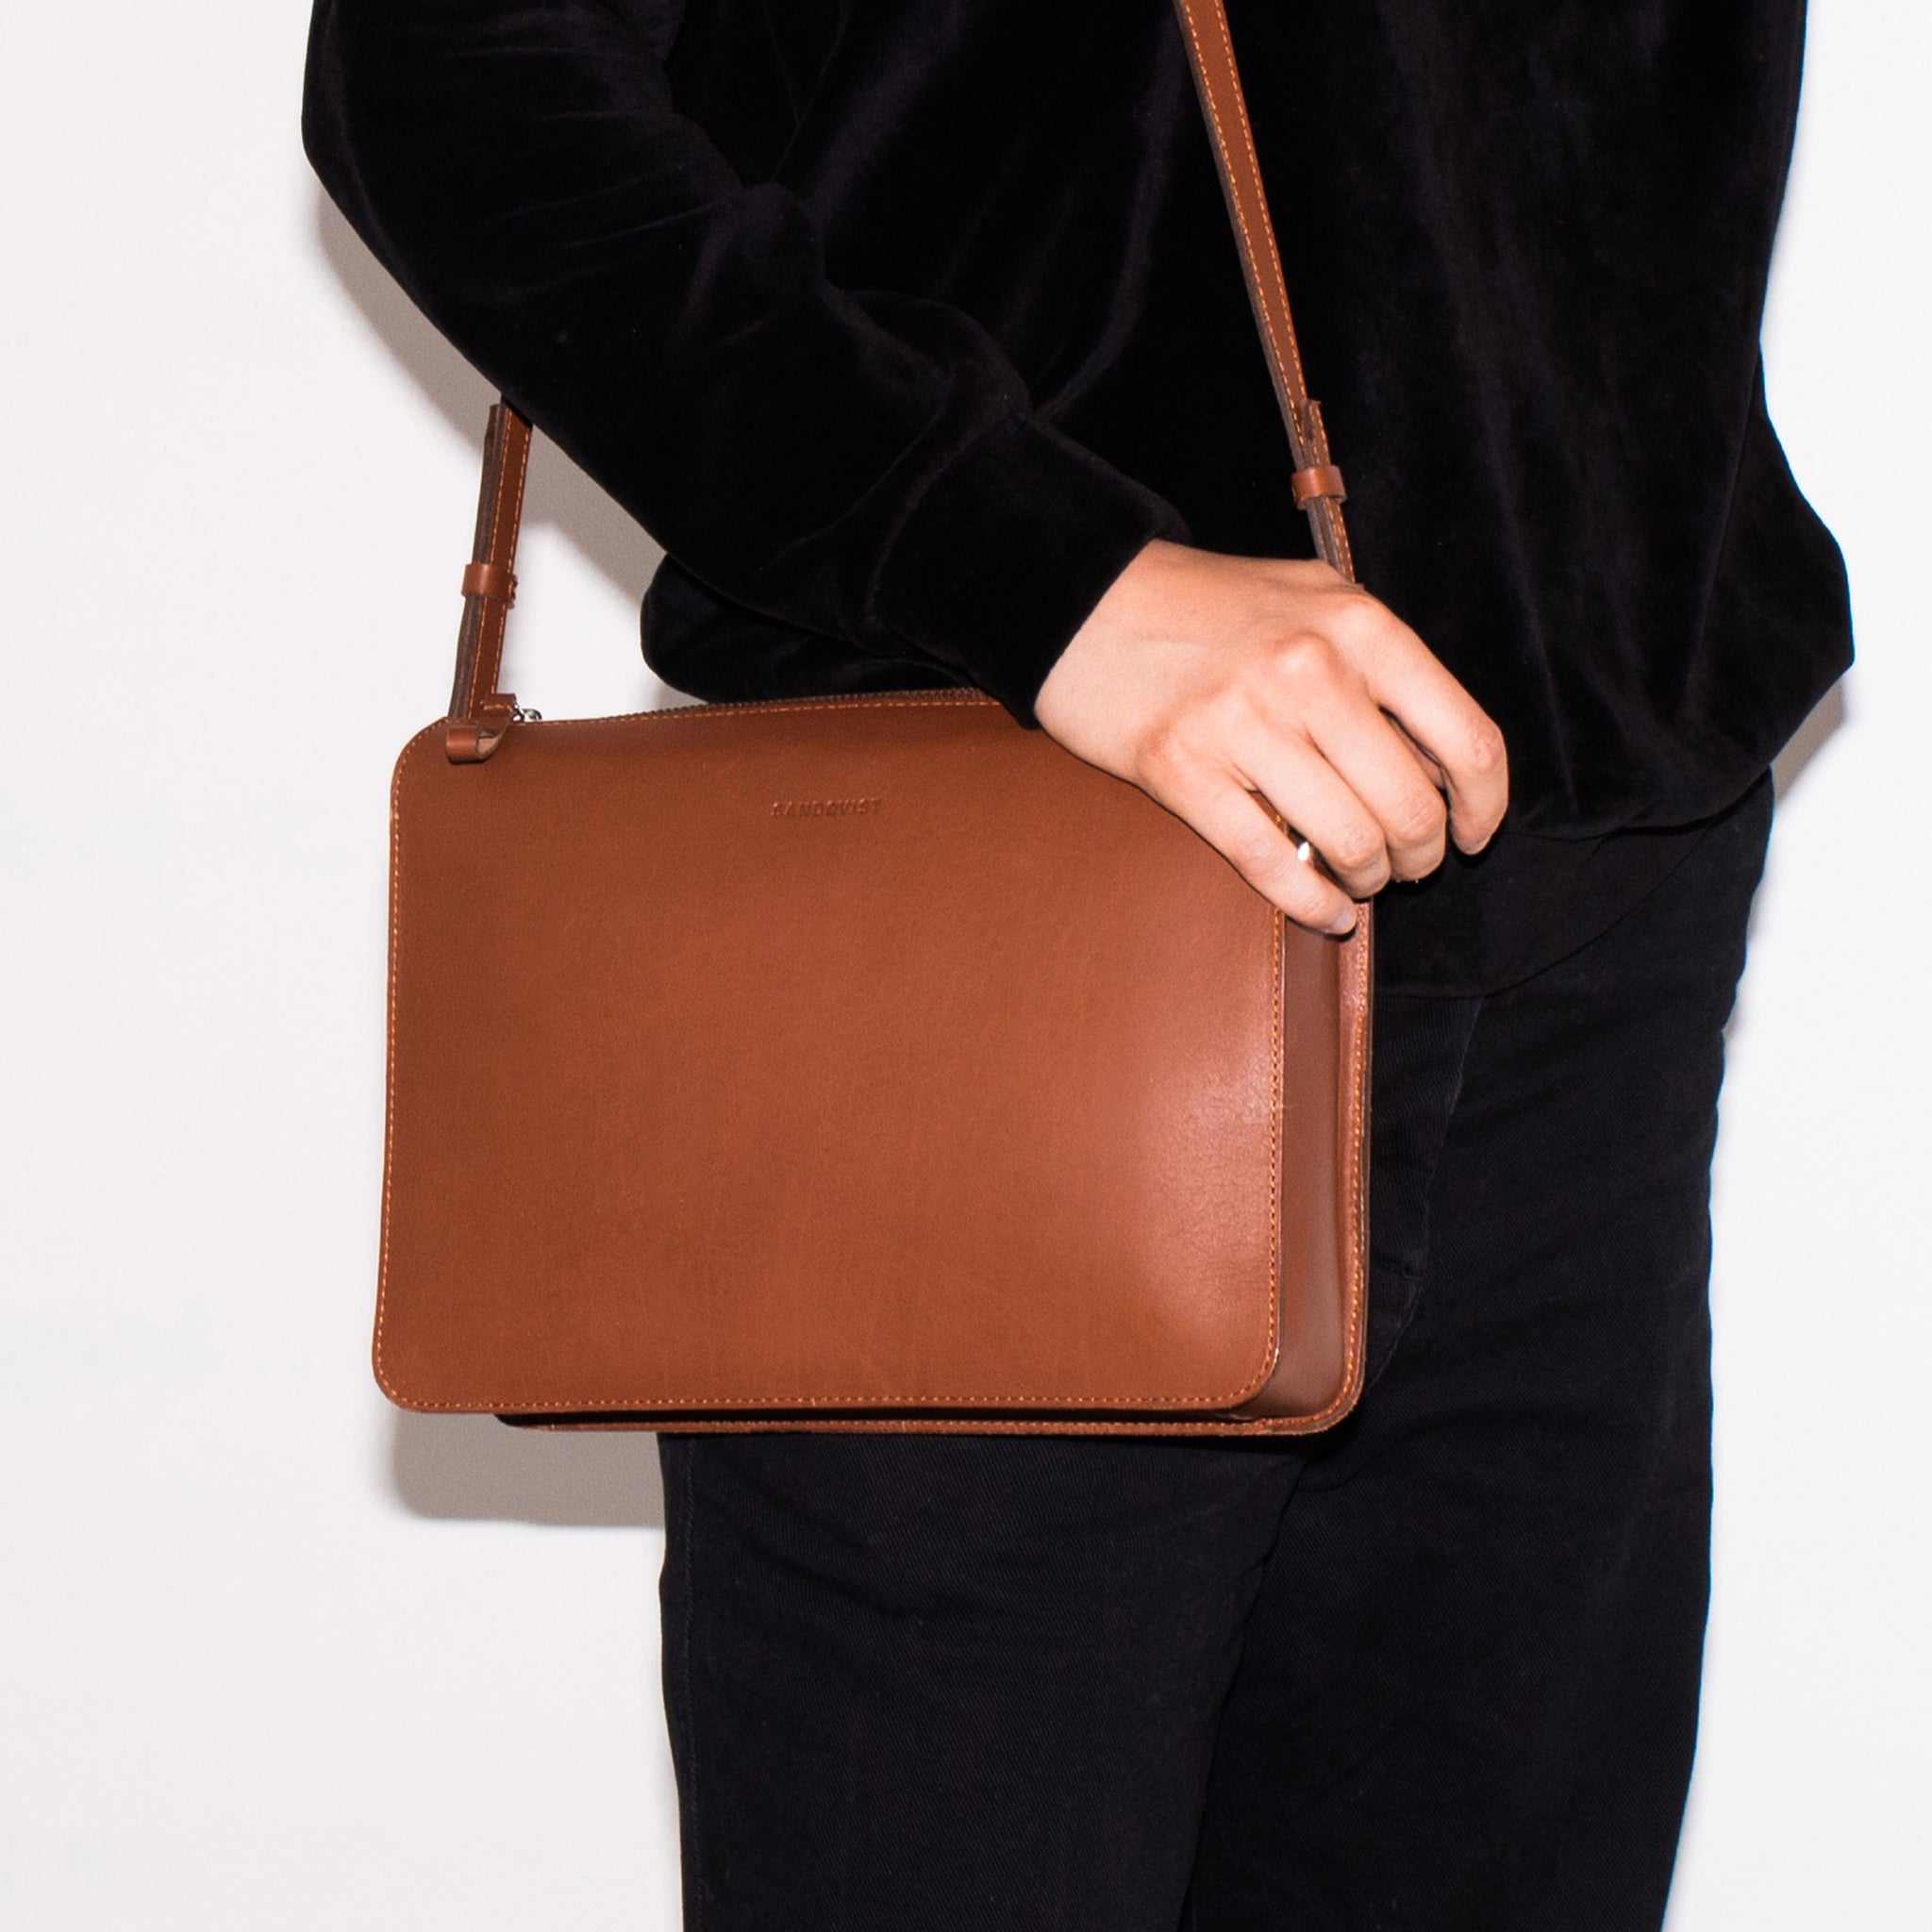 Sandqvist Franka Bag in Cognac Brown